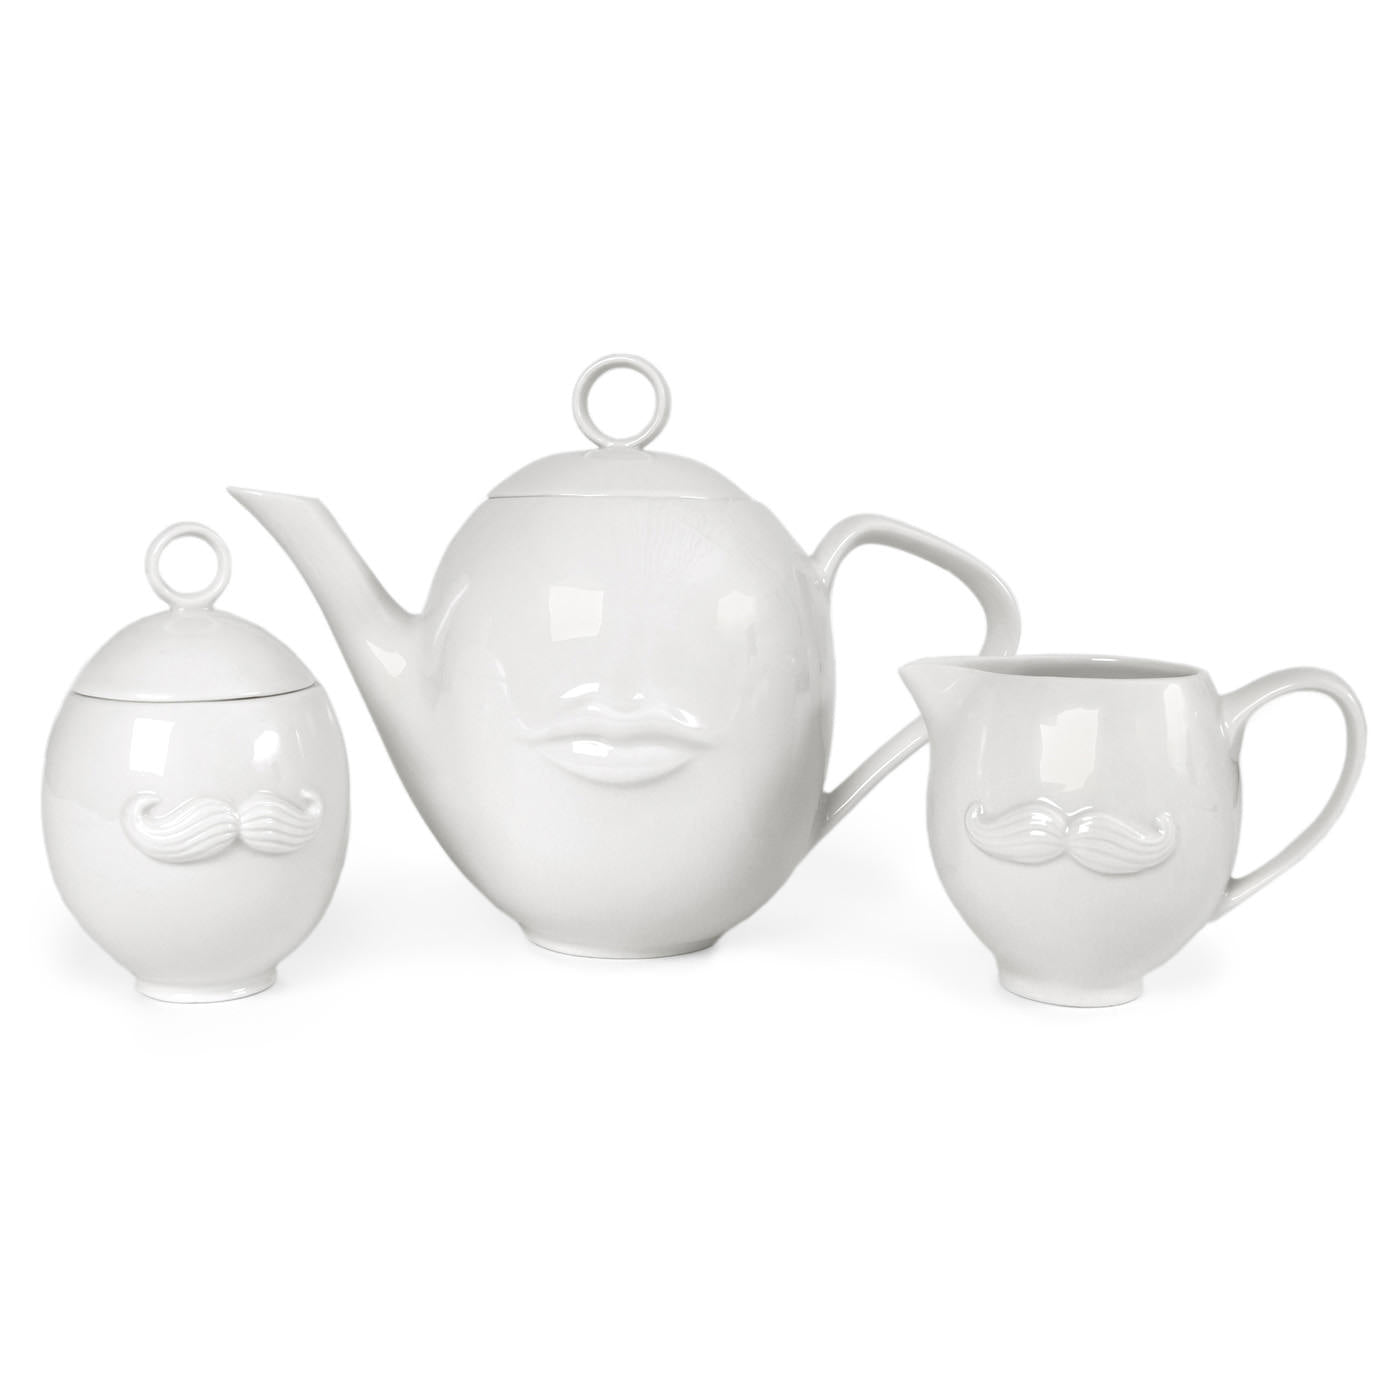 Jonathan Adler Mr & Mrs Sugar & Creamer Set